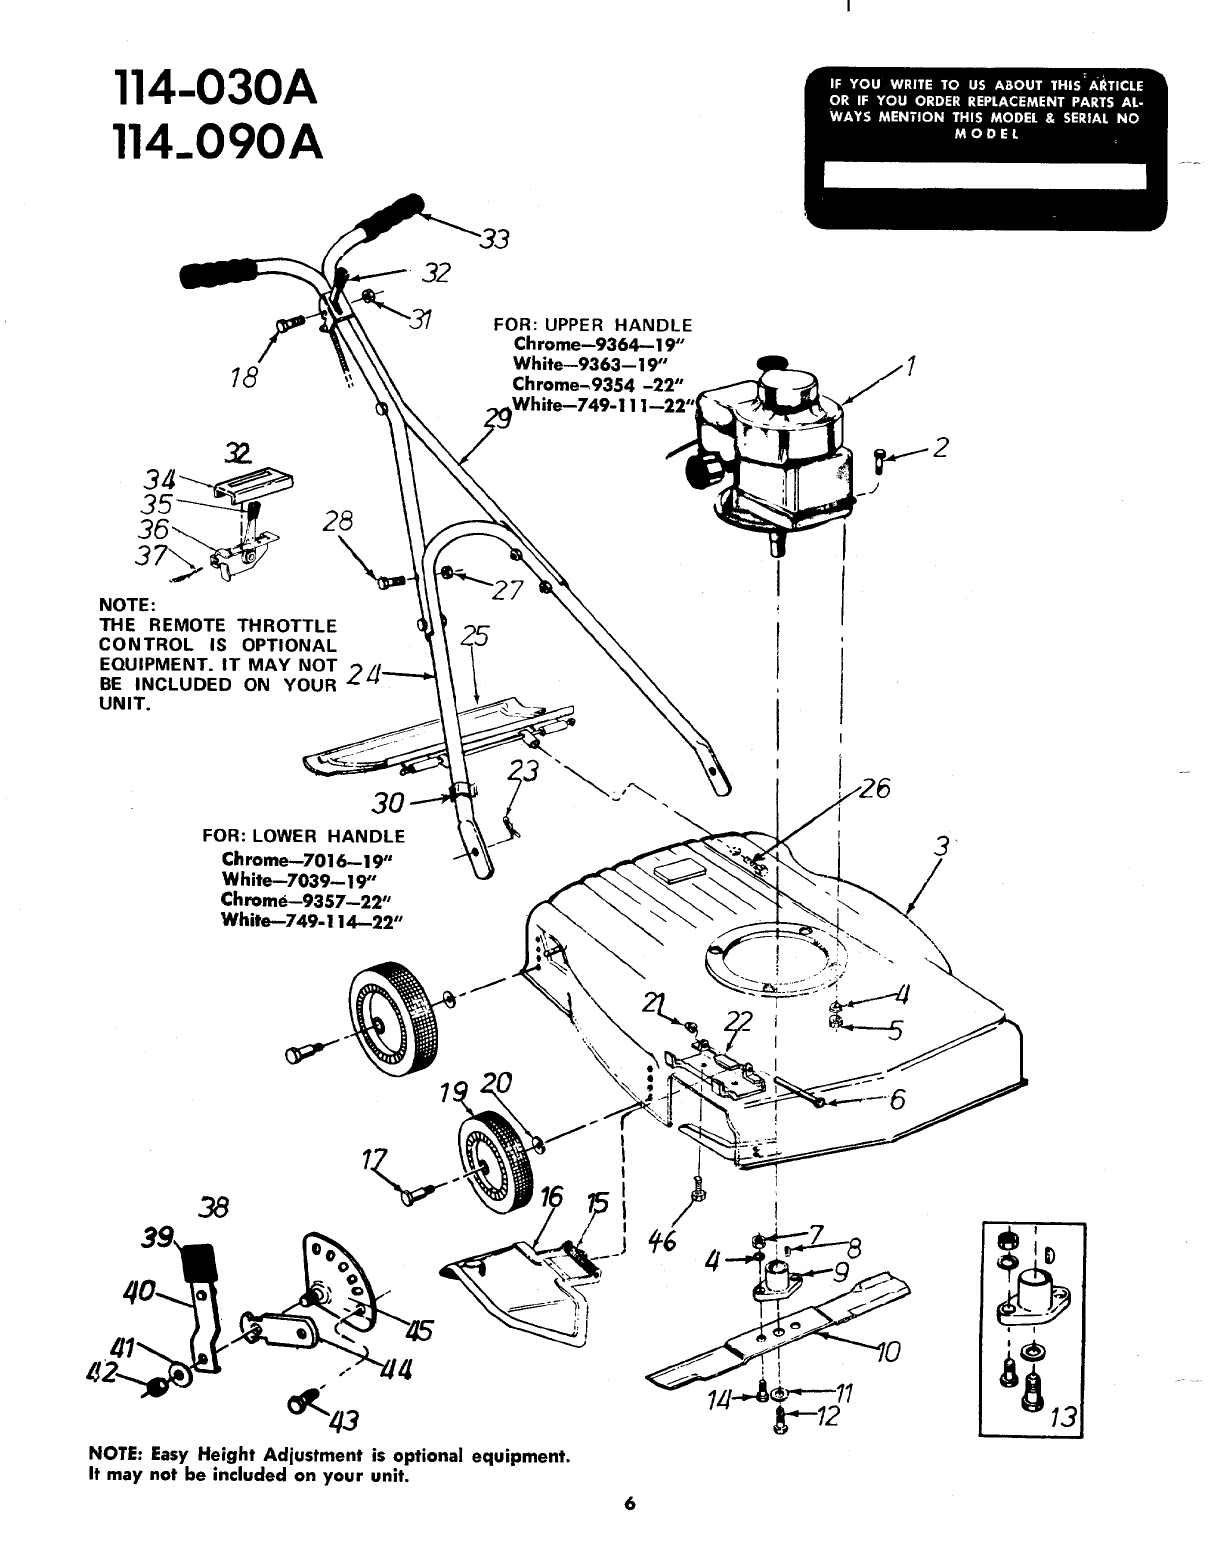 Page 6 of Bolens Lawn Mower 114-030A User Guide